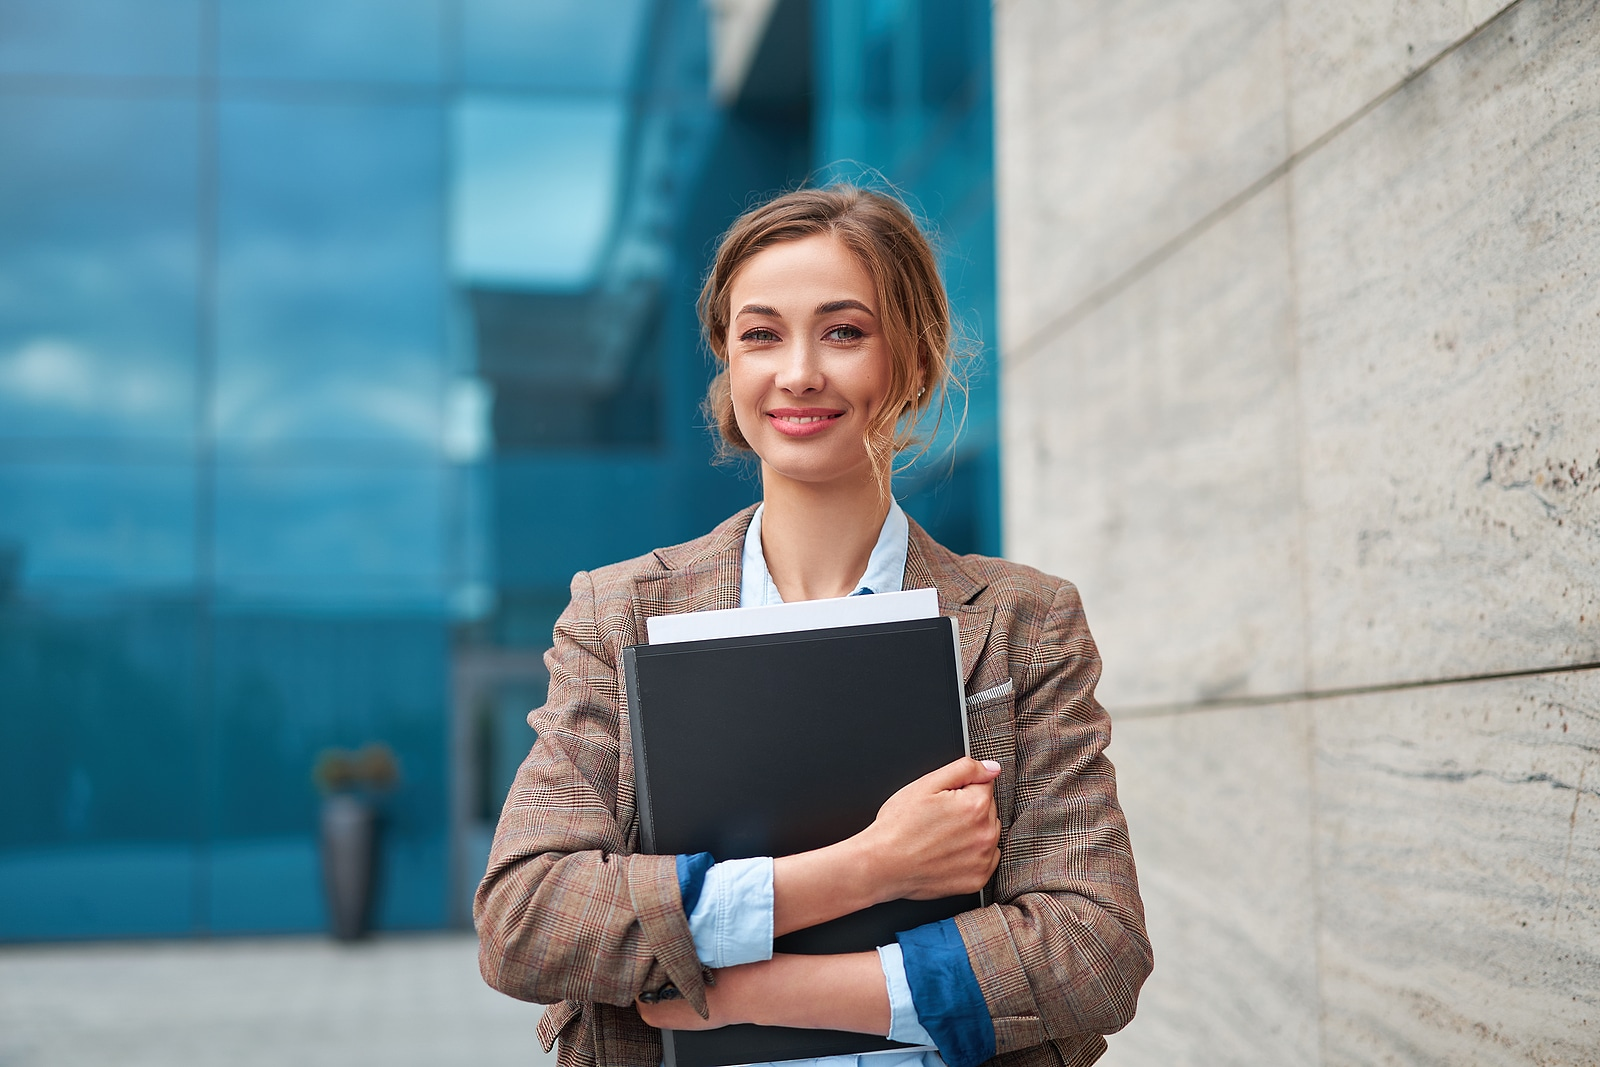 Essential tips for having your own business